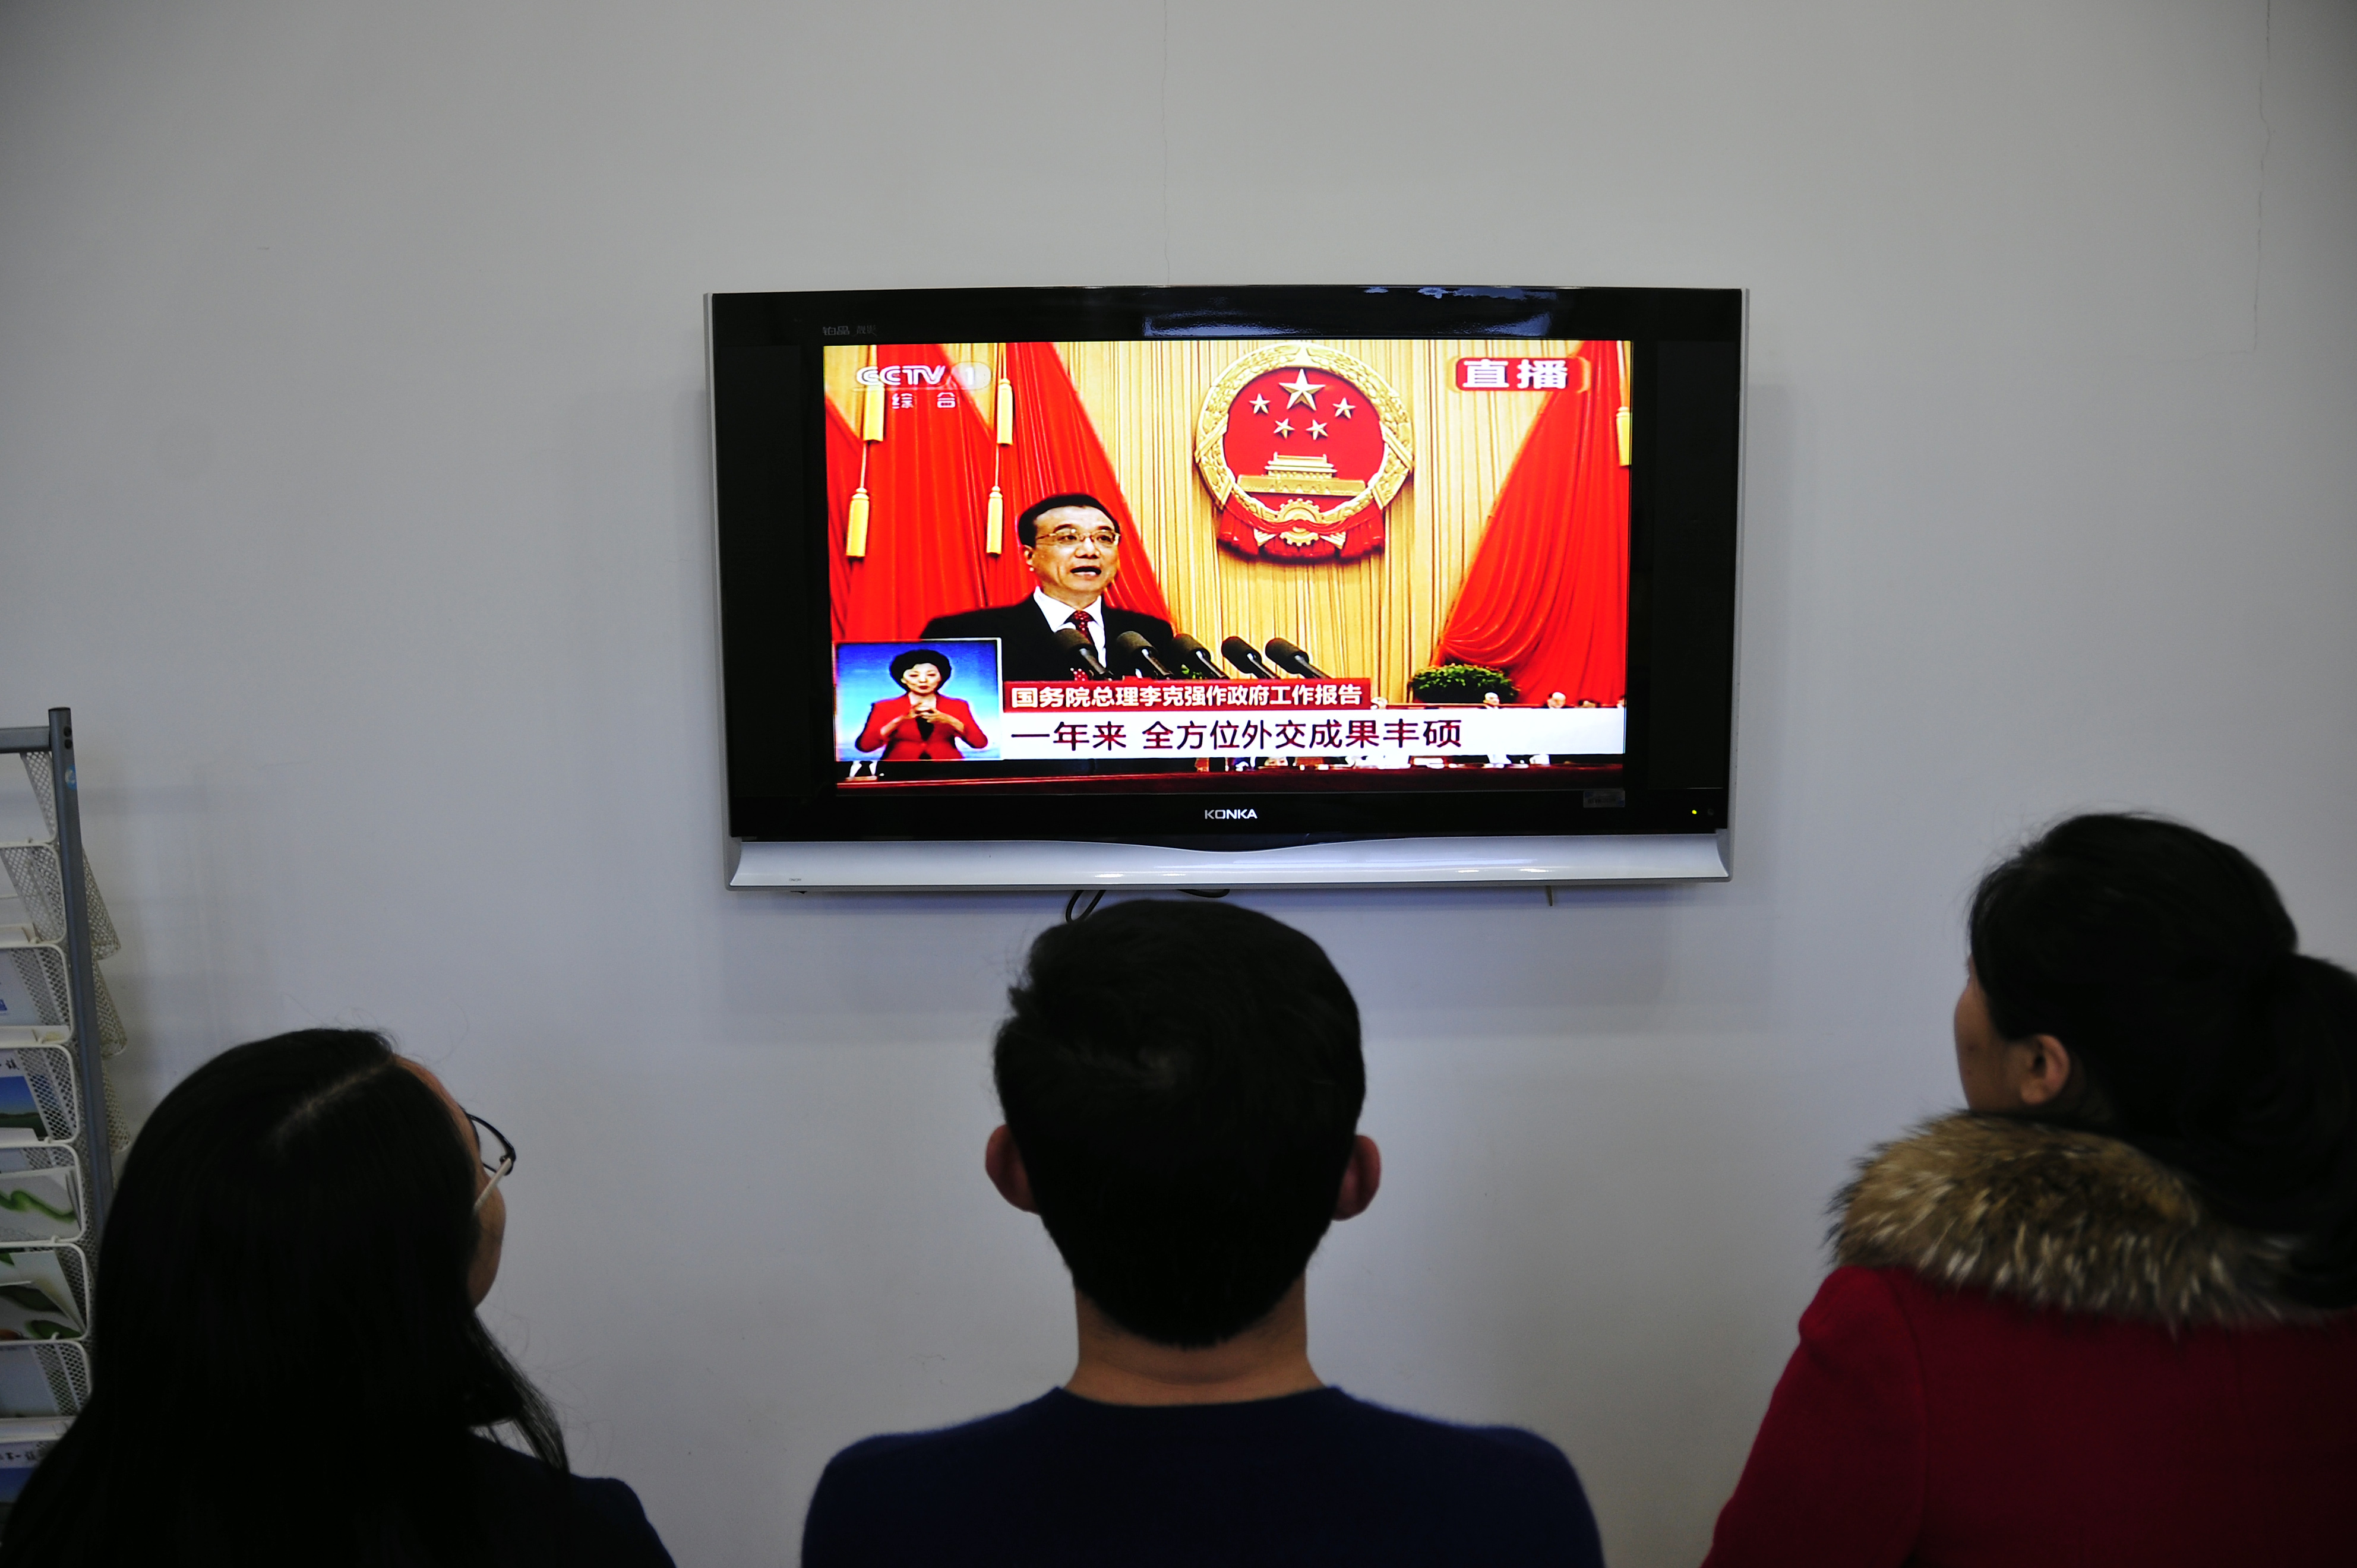 Chinese people watch live television coverage at a conference room in Yantai, east China's Shandong province as Chinese Premier Li Keqiang delivers his report during the opening ceremony of the National People's Congress in the Great Hall of the People in Beijing on March 5, 2016.